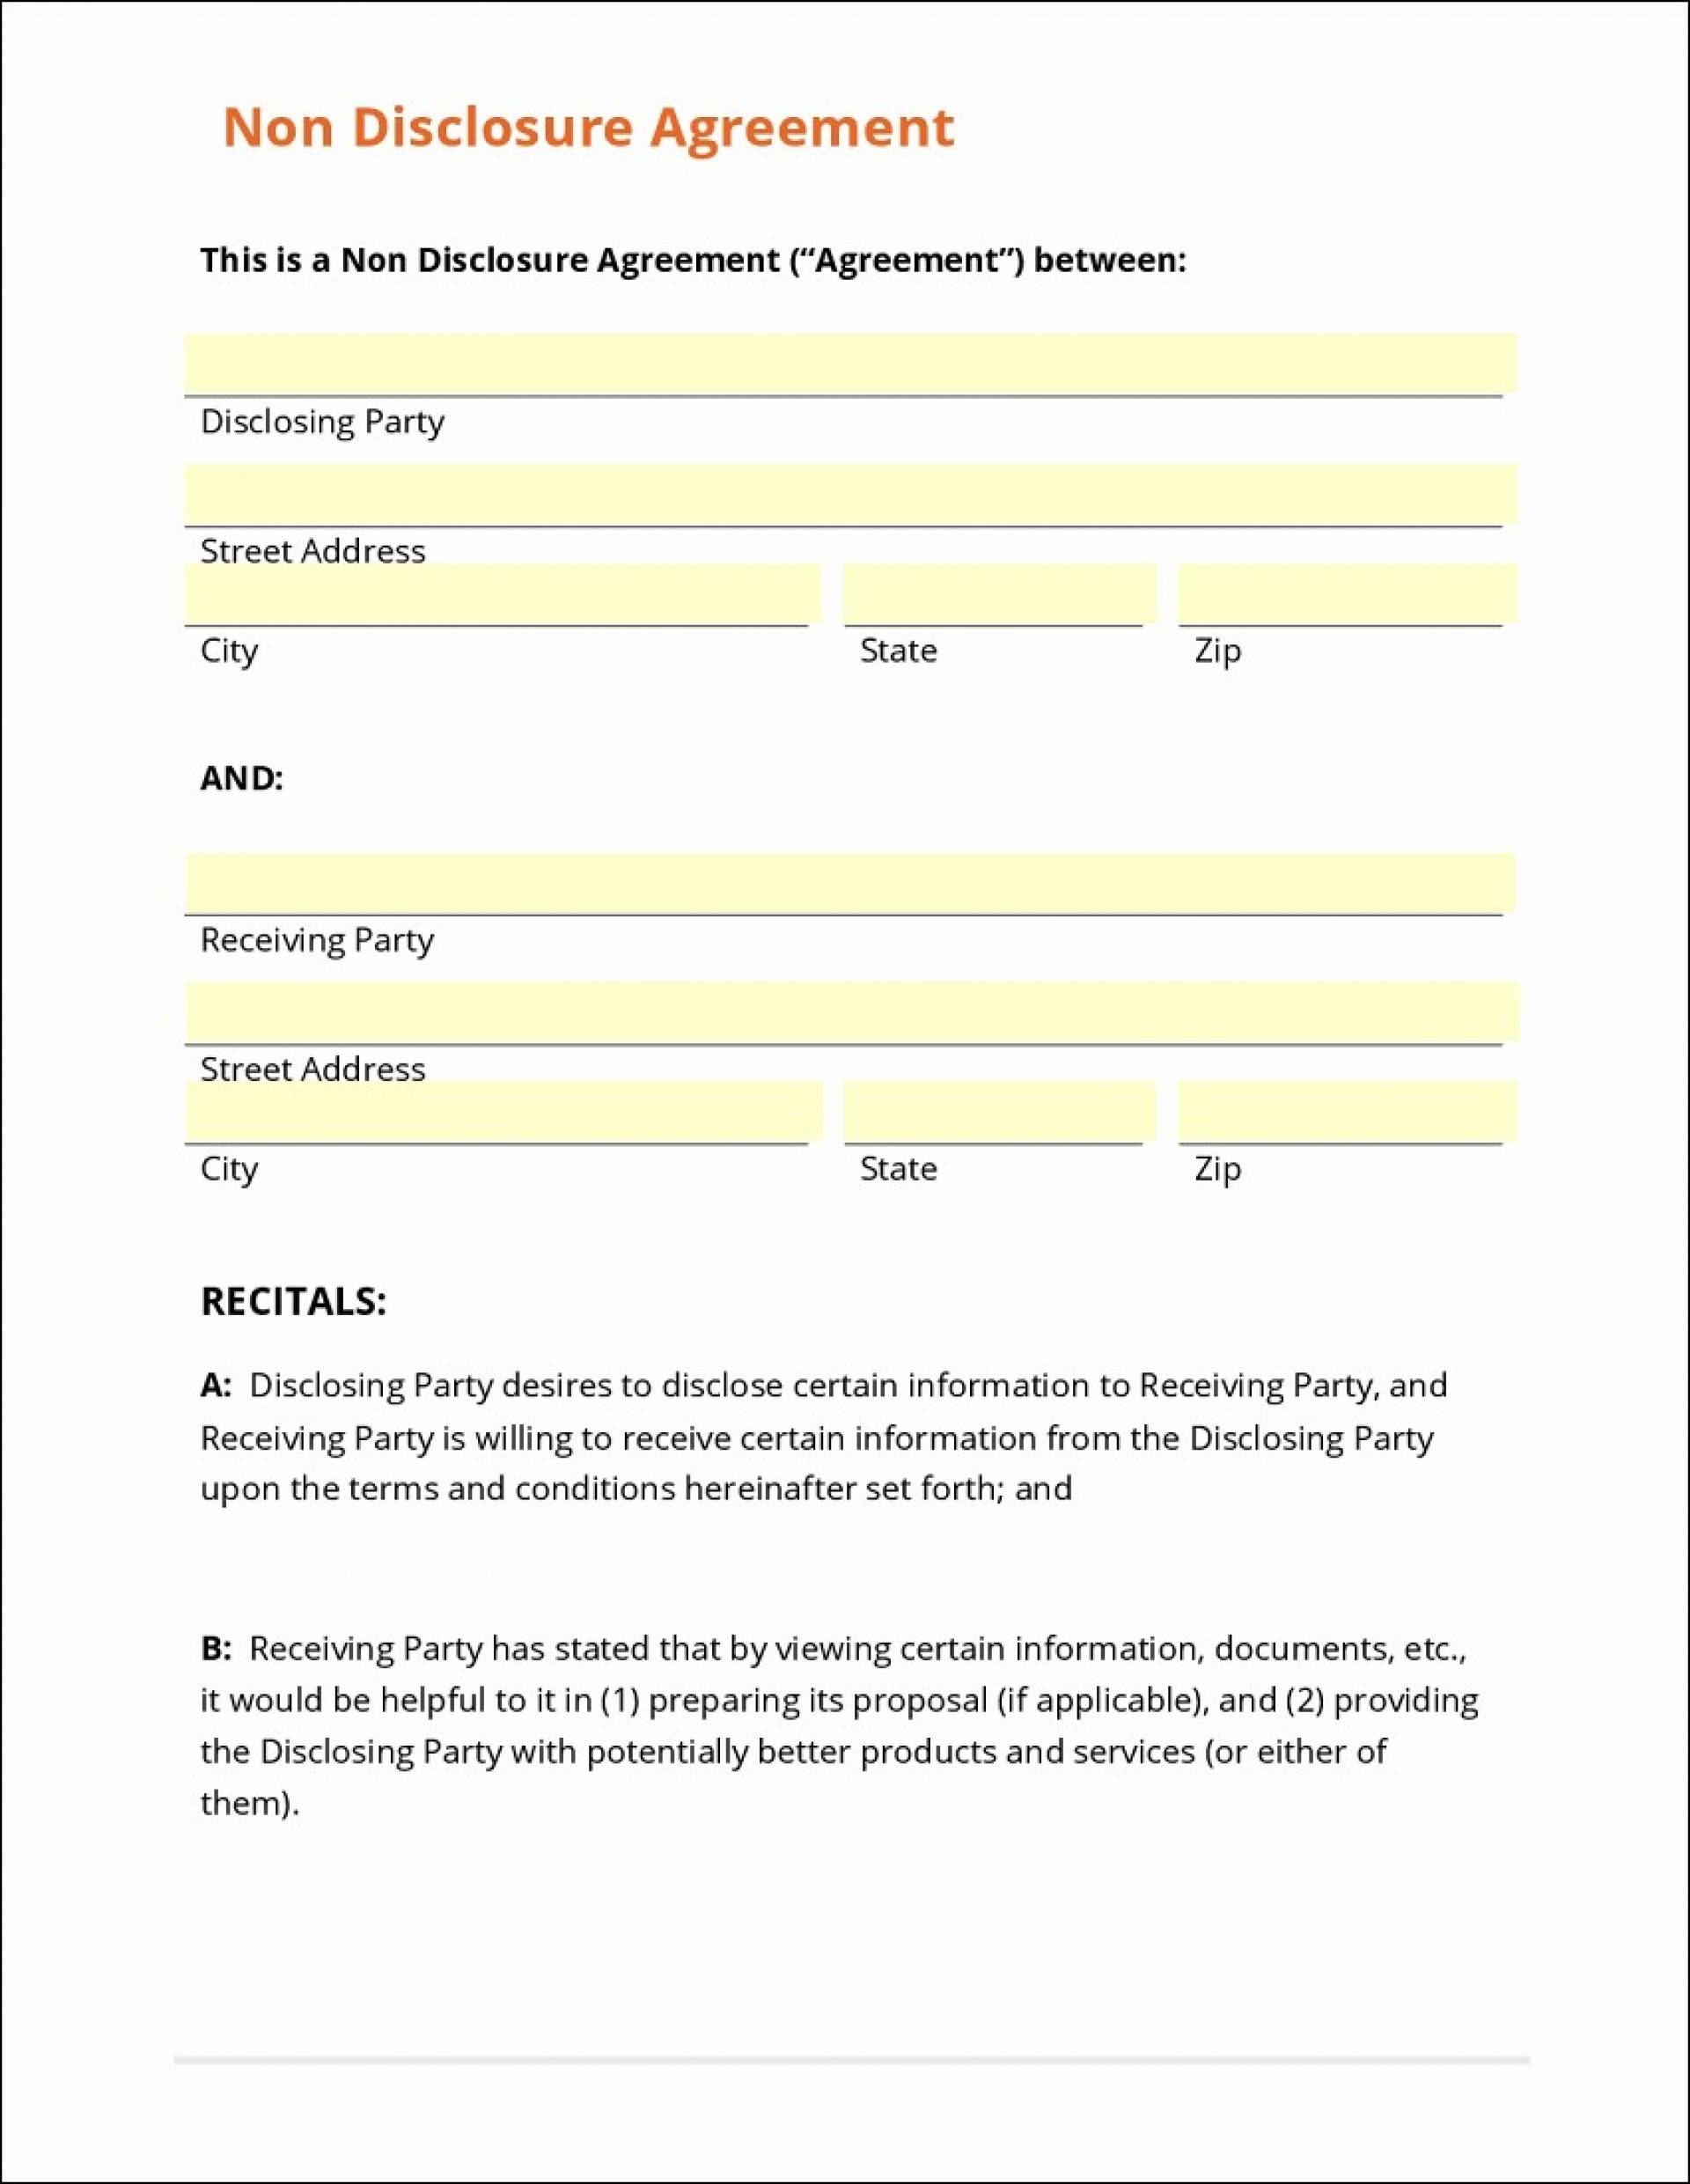 Non Disclosure Agreement Sample Word Format